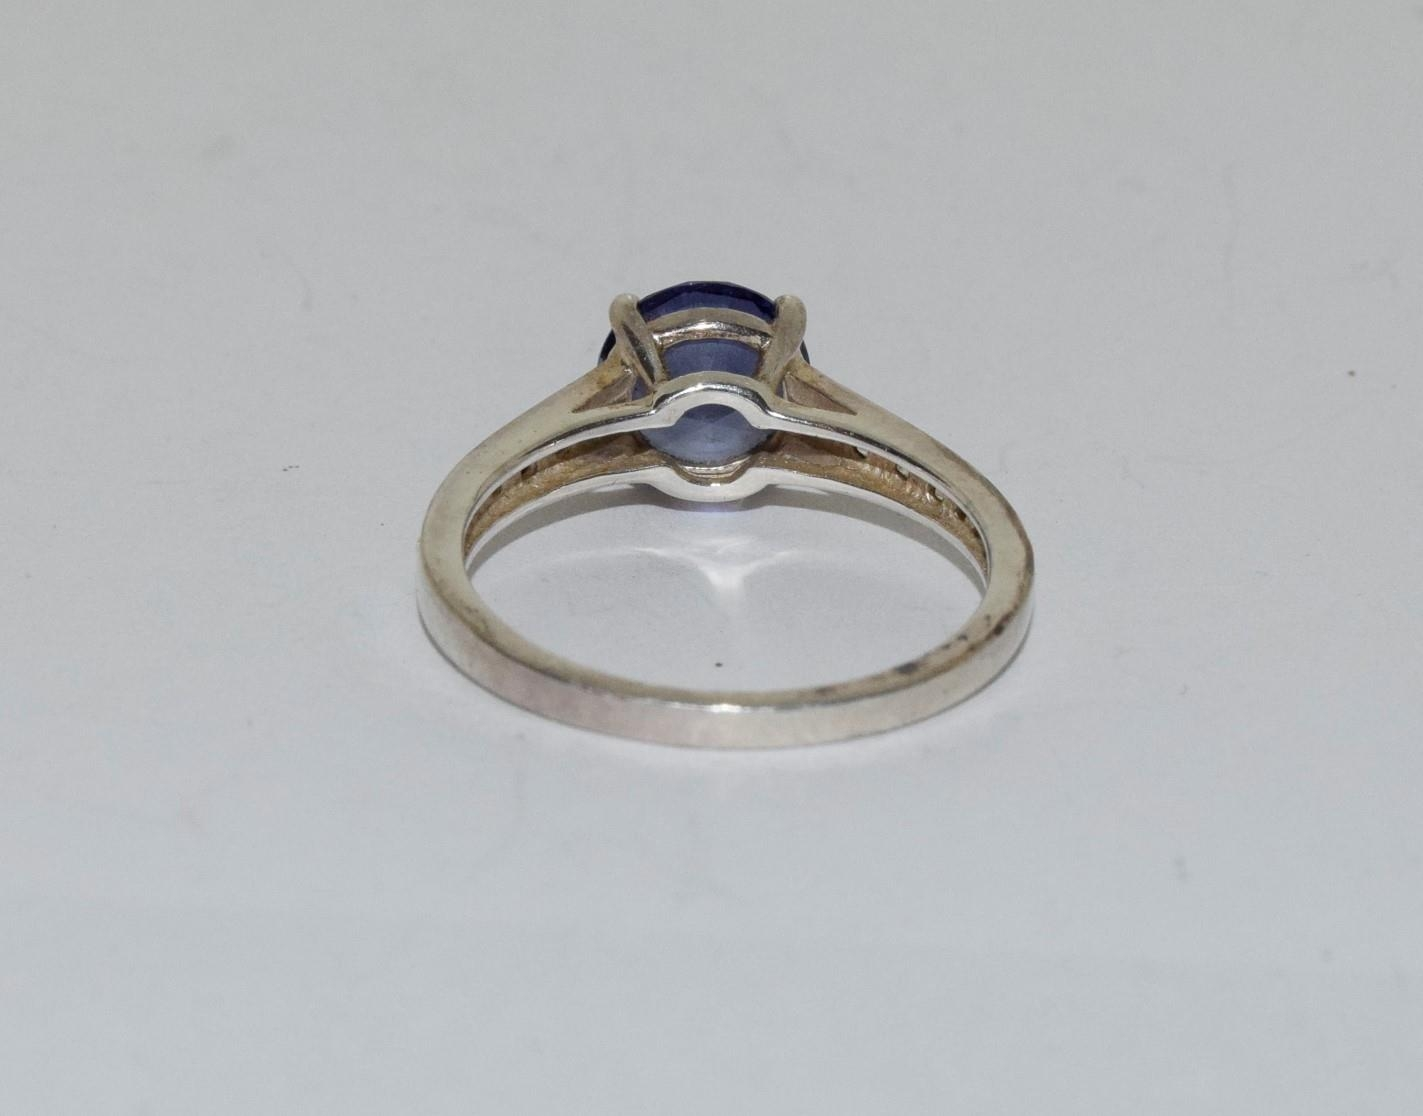 A Blue stone silver 925 ring, size R - Image 3 of 3